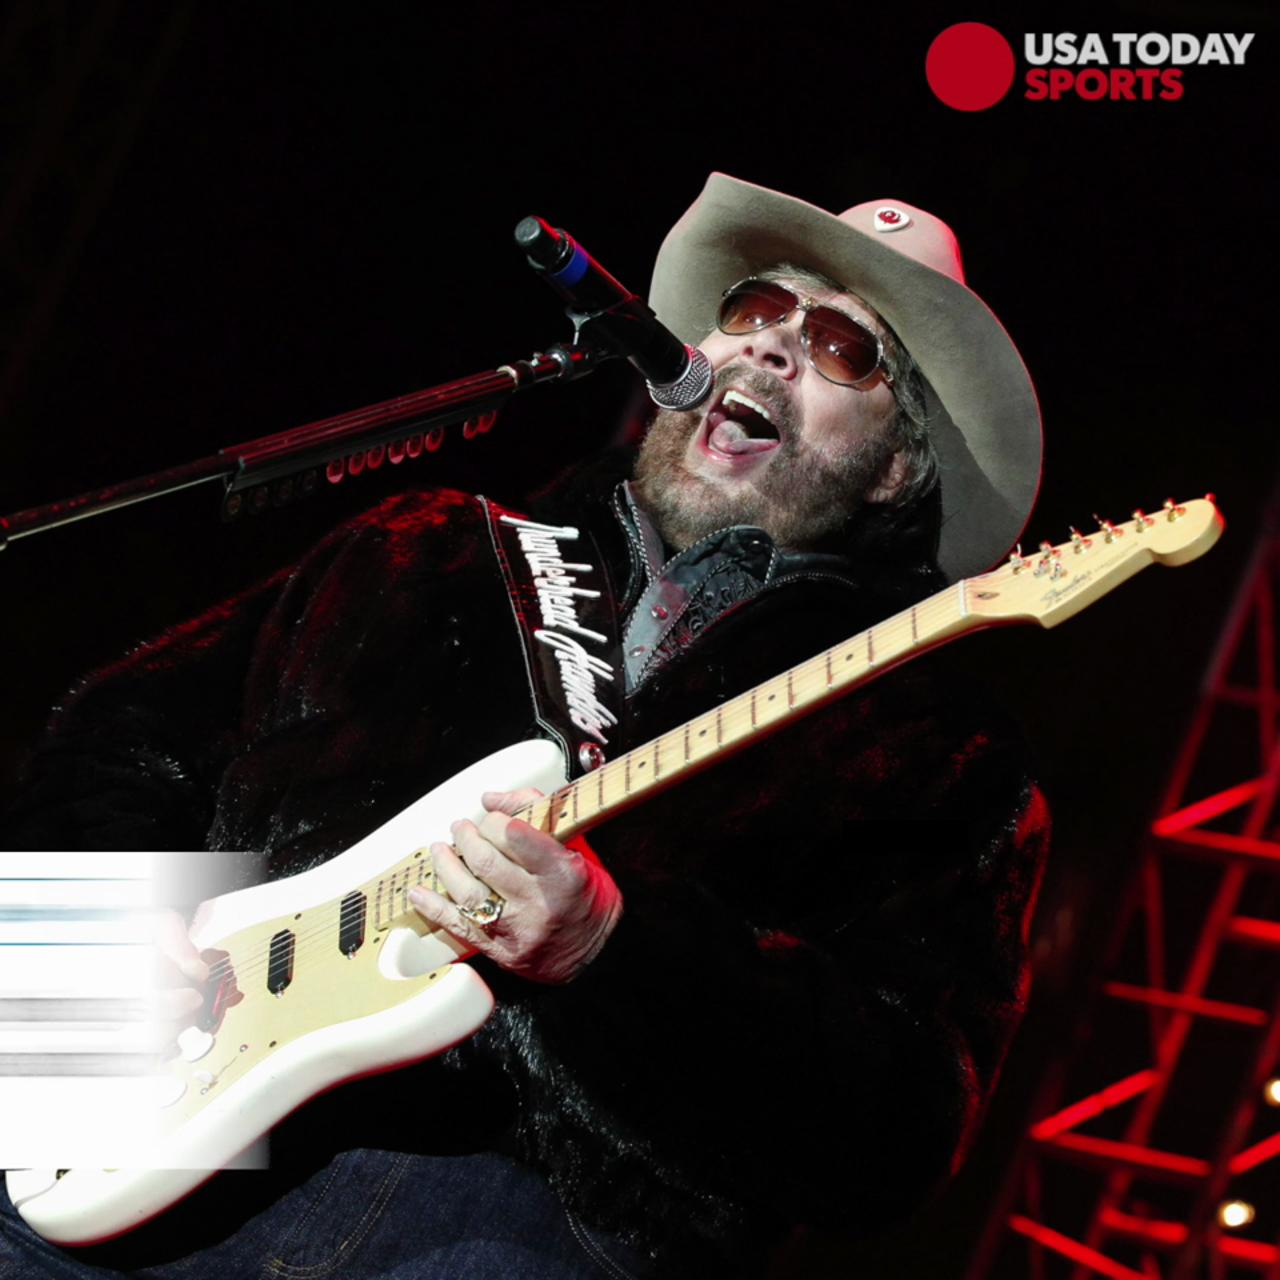 Hank Williams Jr is back on ESPN (and so is controversy)